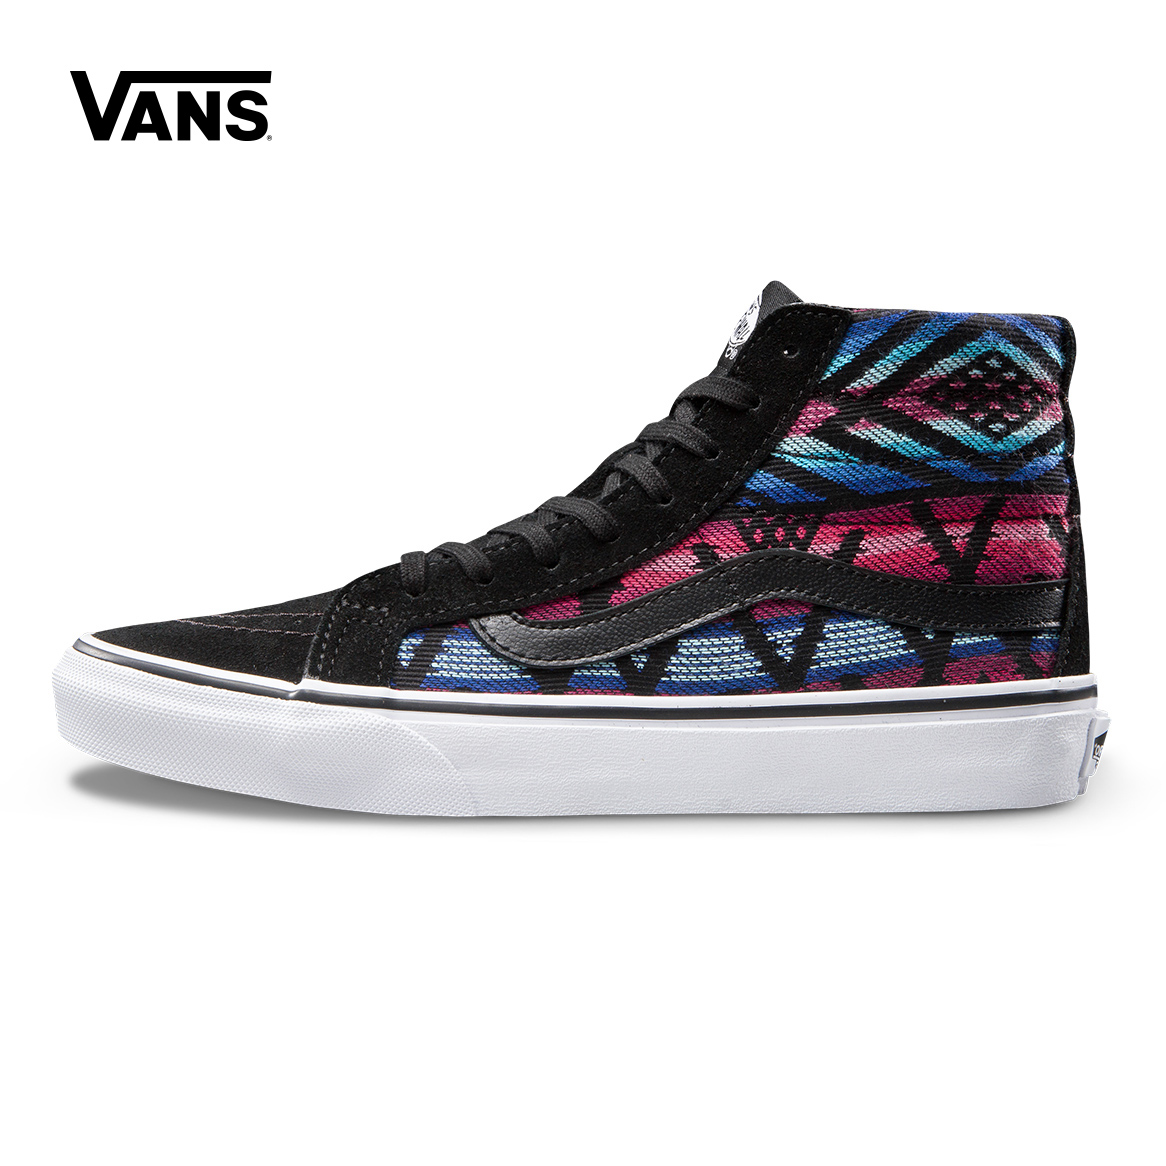 Original Vans High-Top Female Sneakers For Women Skateboarding Shoes Sport Shoes Canvas Breathable Leisure Colorful Top Quality